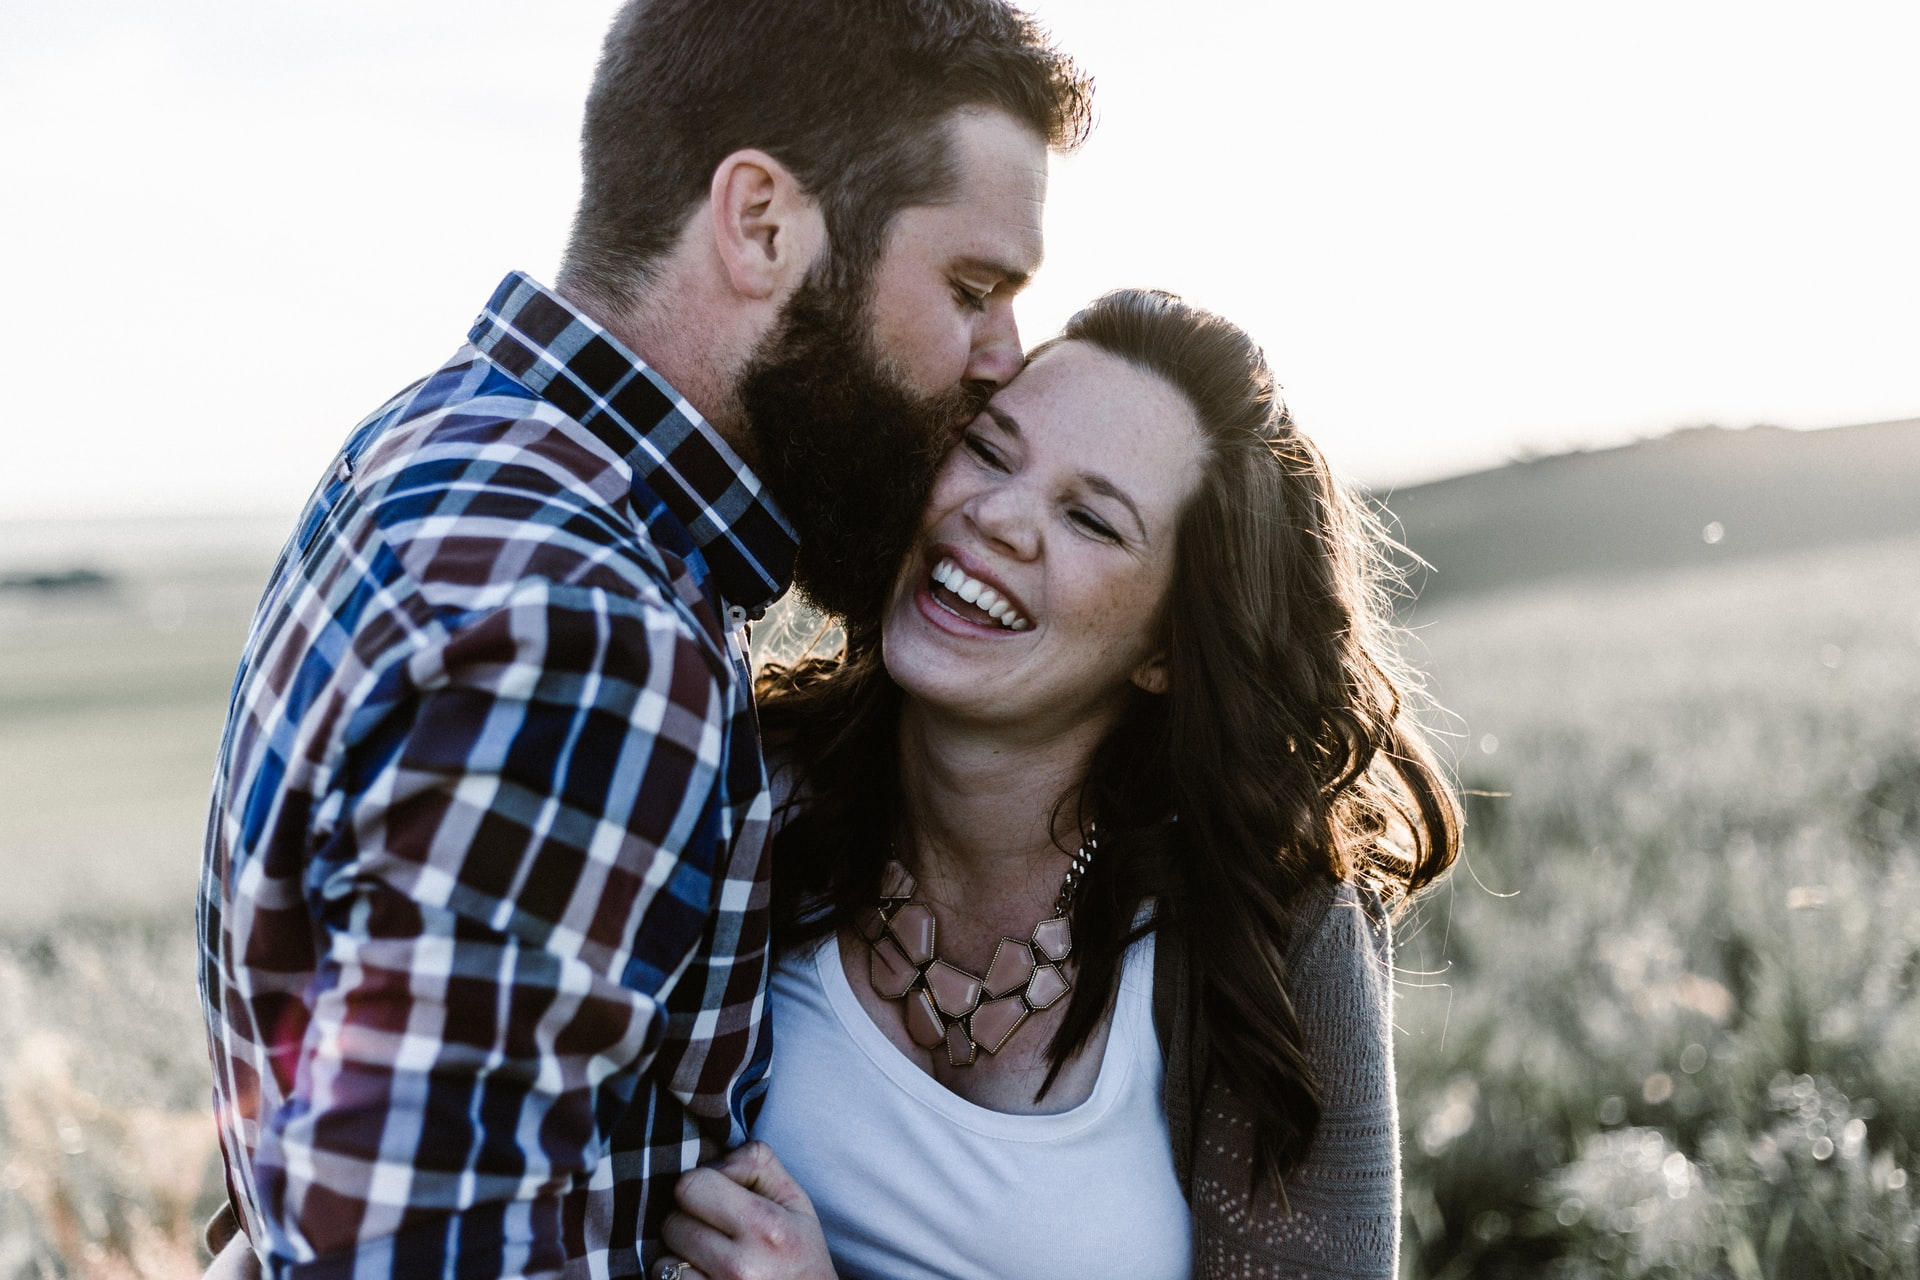 Top 10 Cutest And Sweetest Selfie Couple Poses The best cute selfie idea for couples is one that leaves you laughing every time you look at it. sweetest selfie couple poses